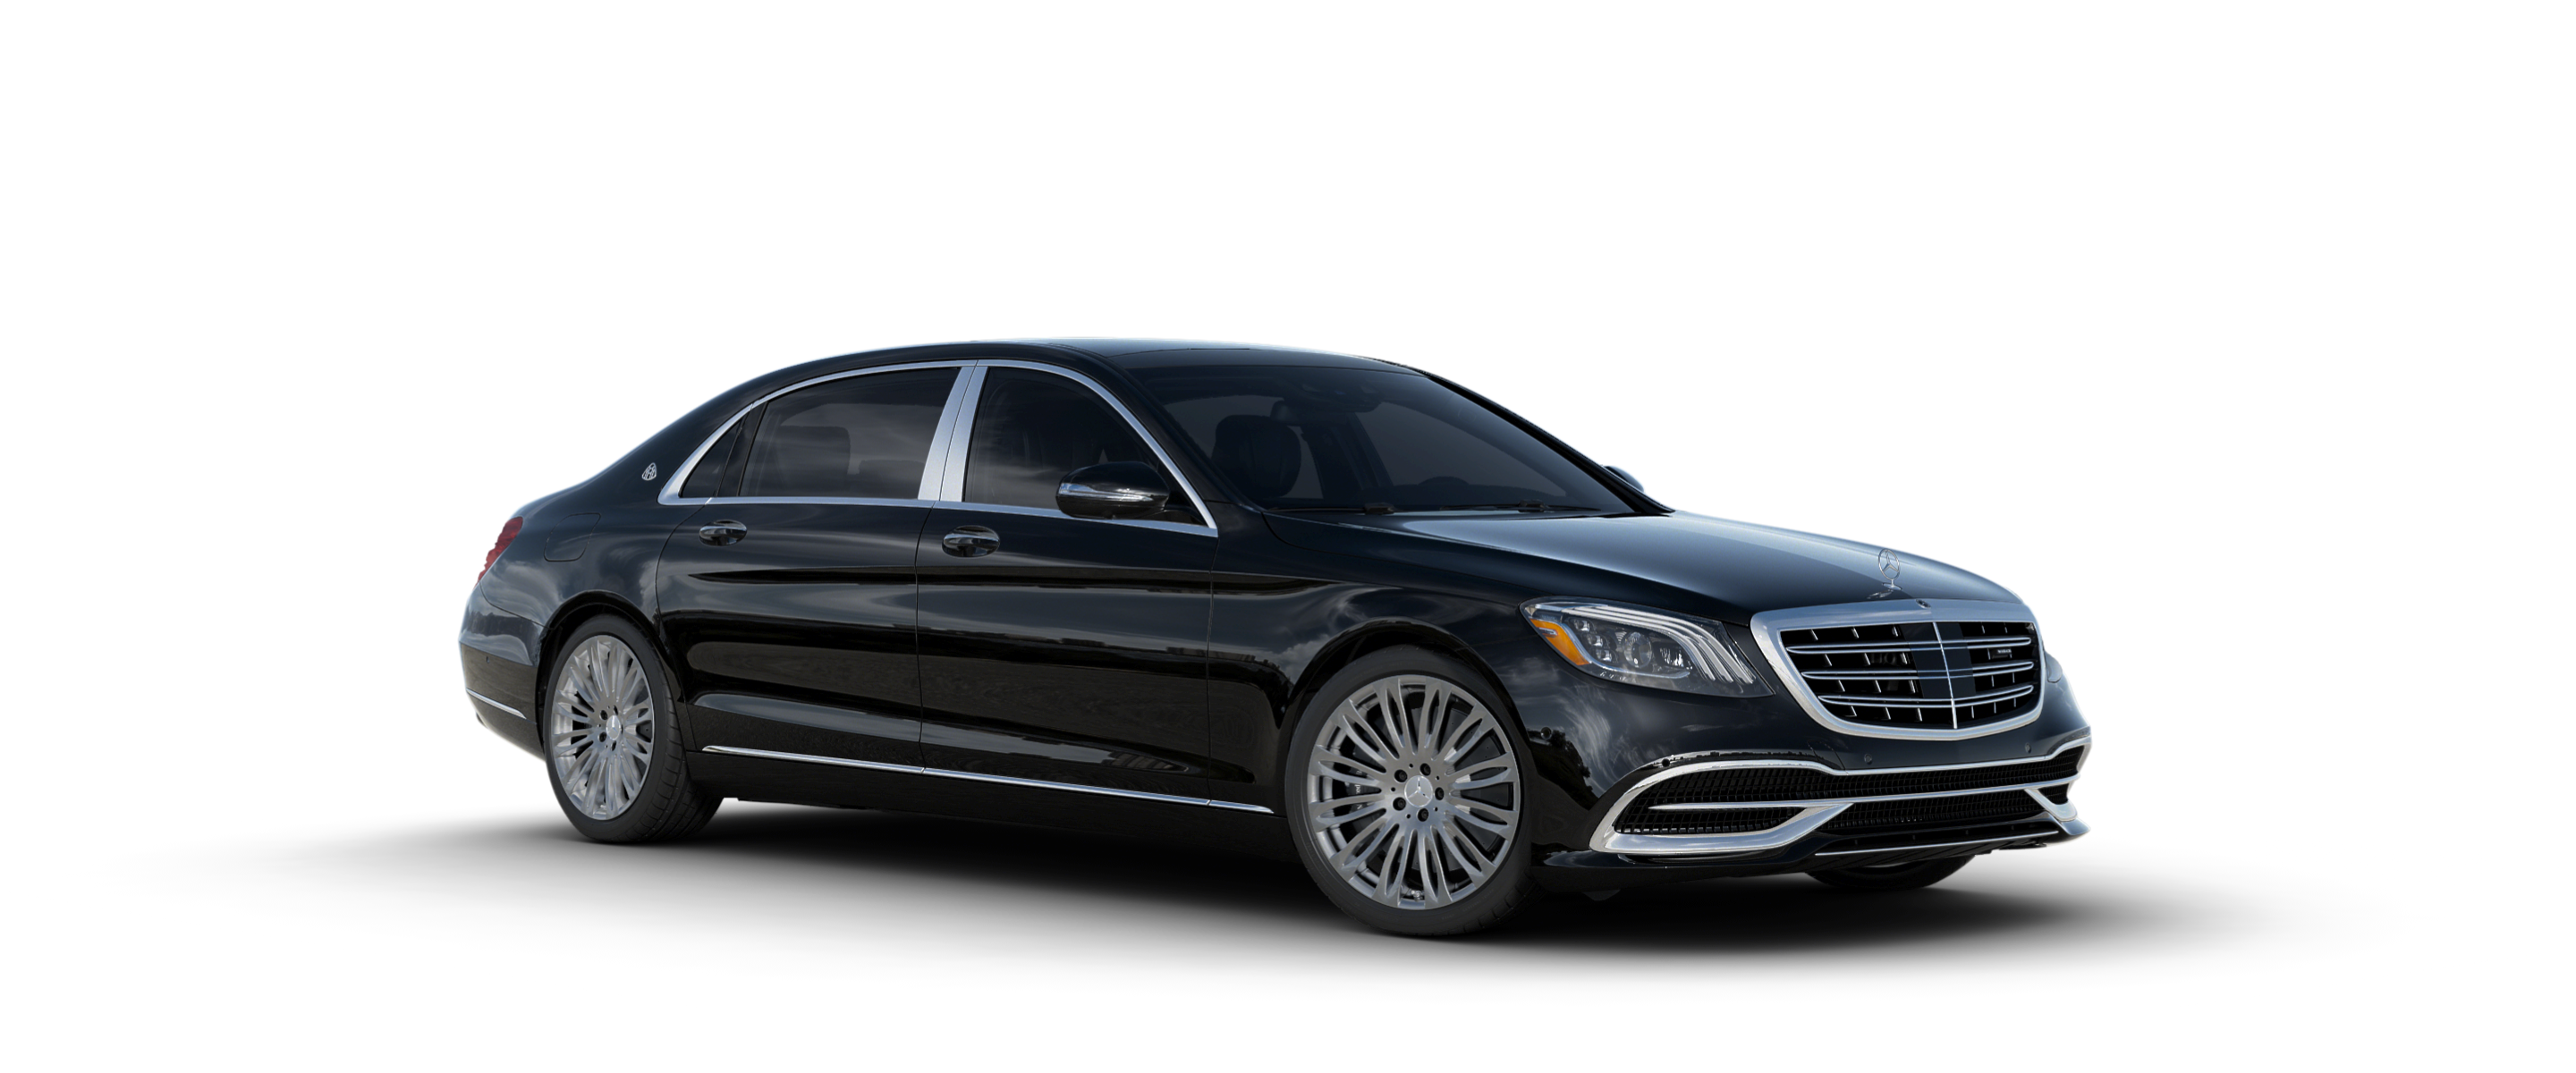 mercedes lease vehicles off mb benz